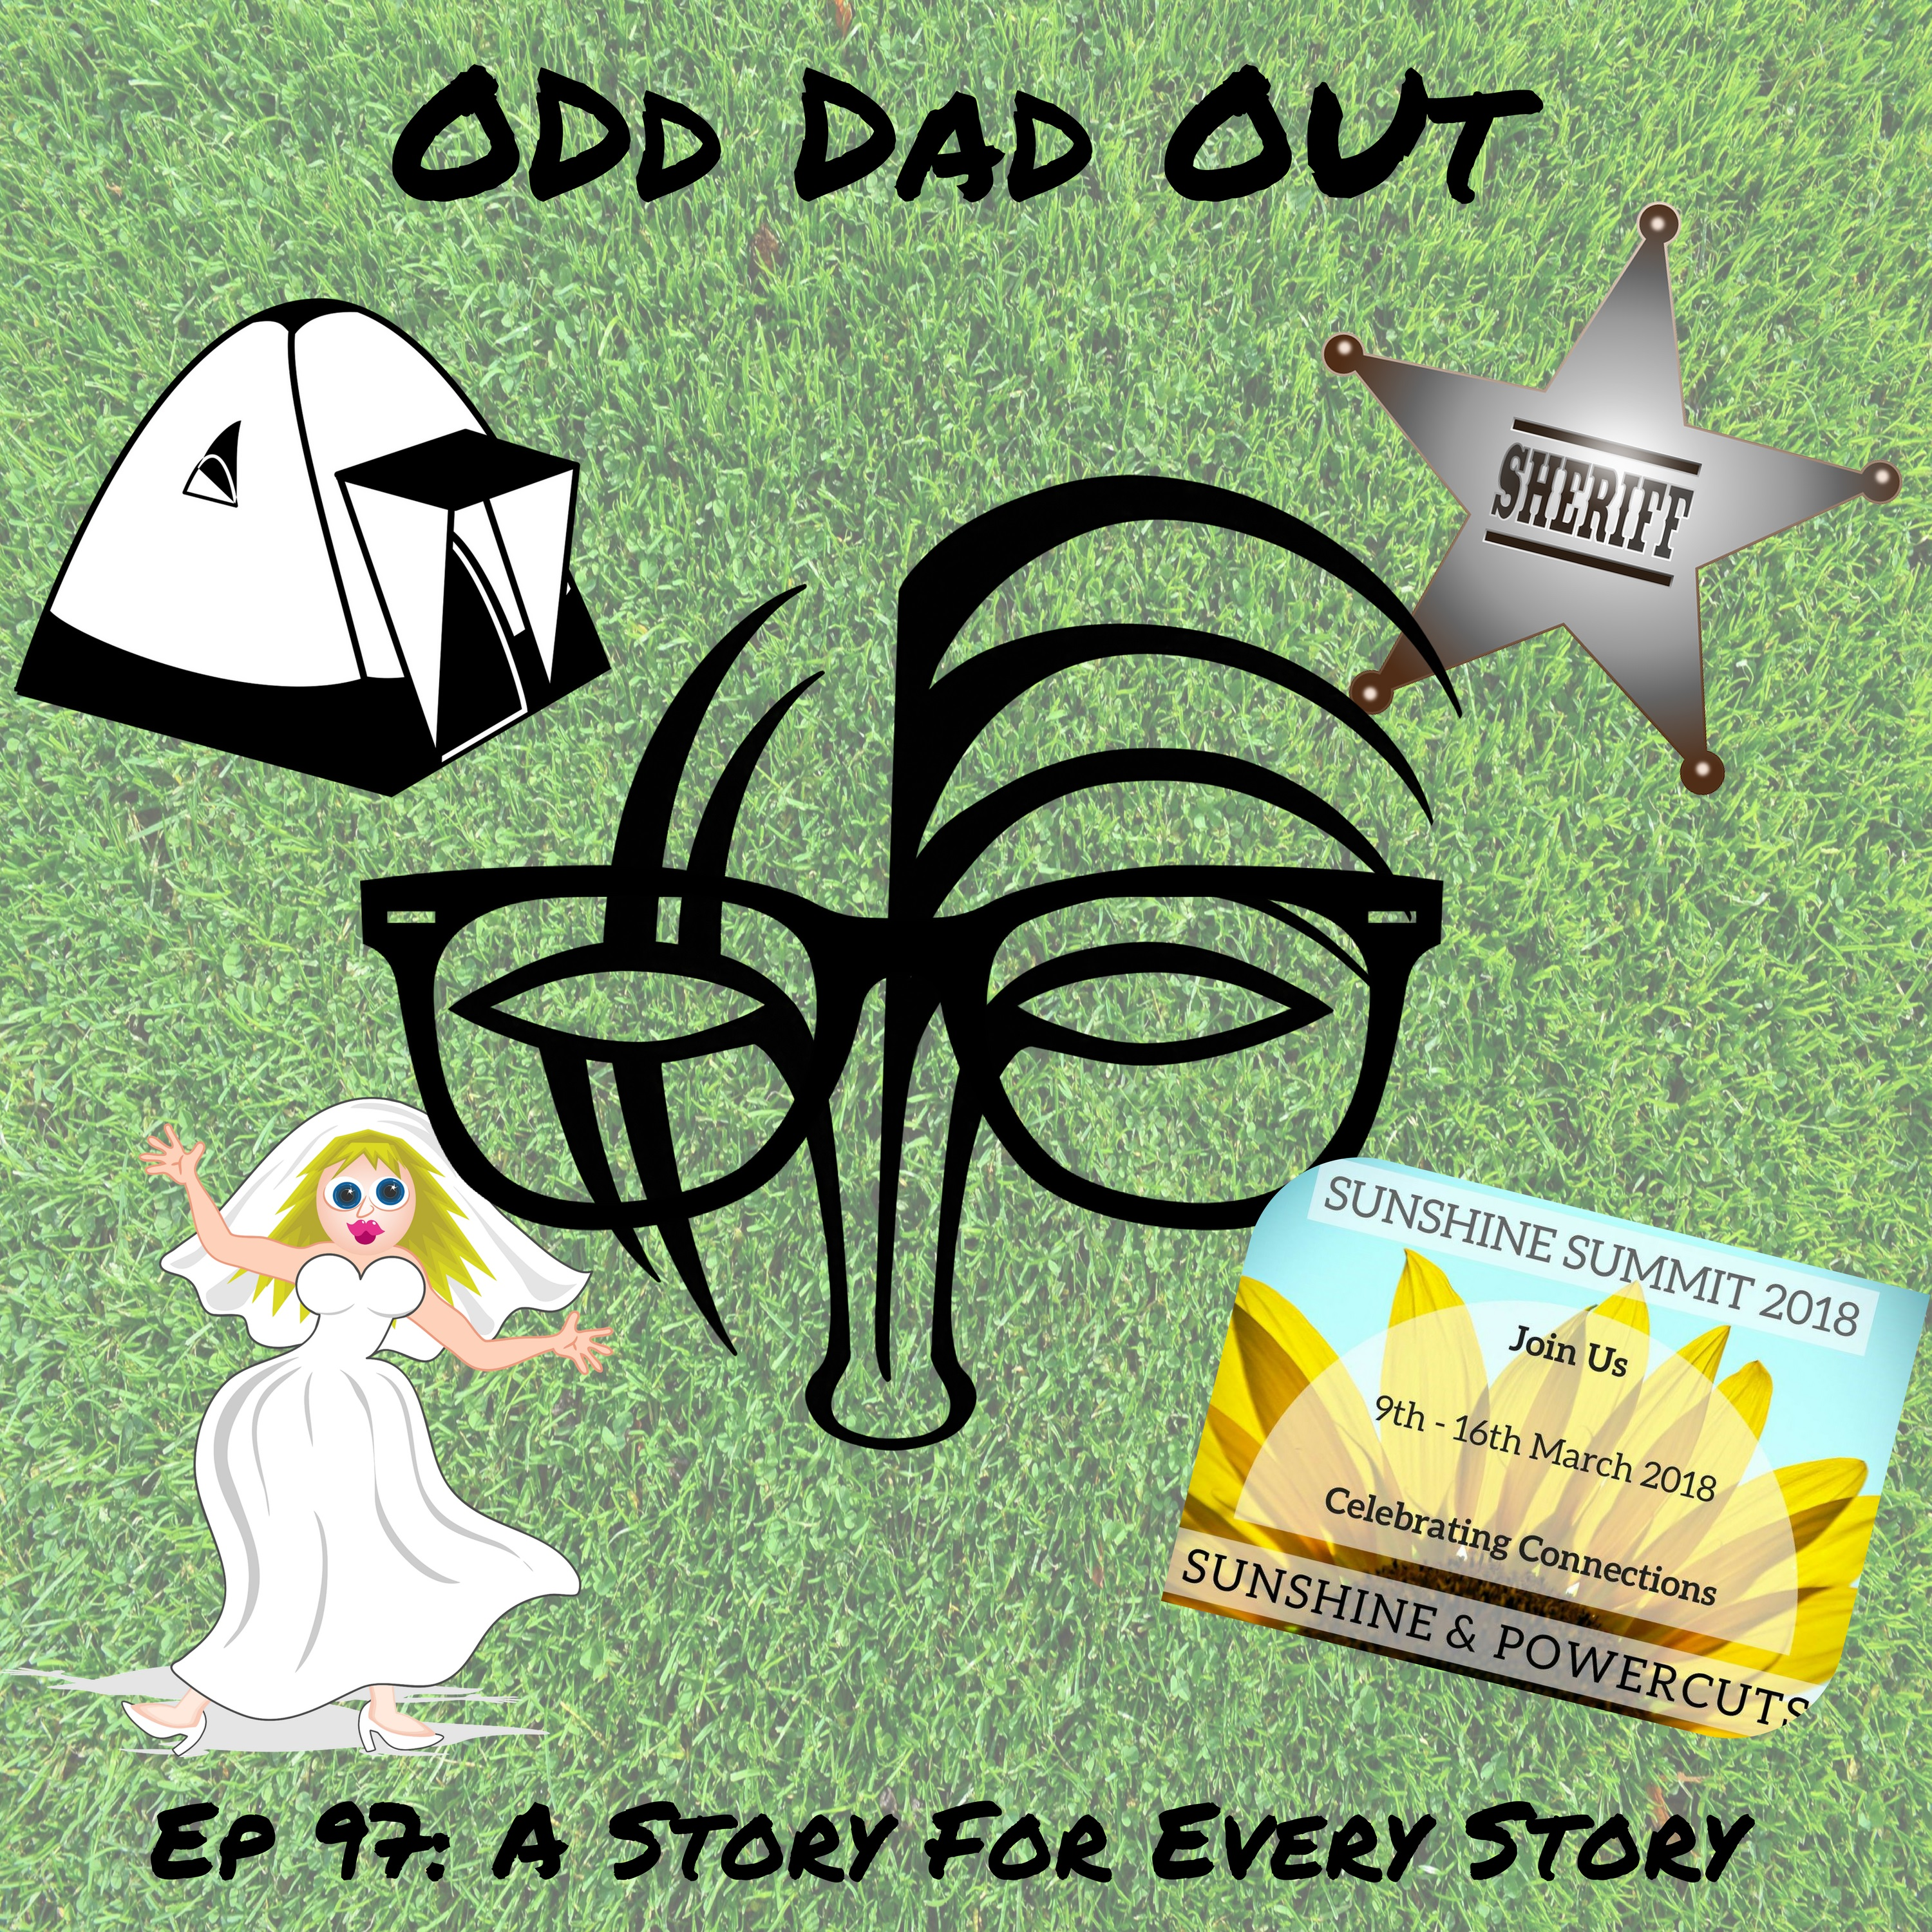 ODO 97: A Story For Every Story